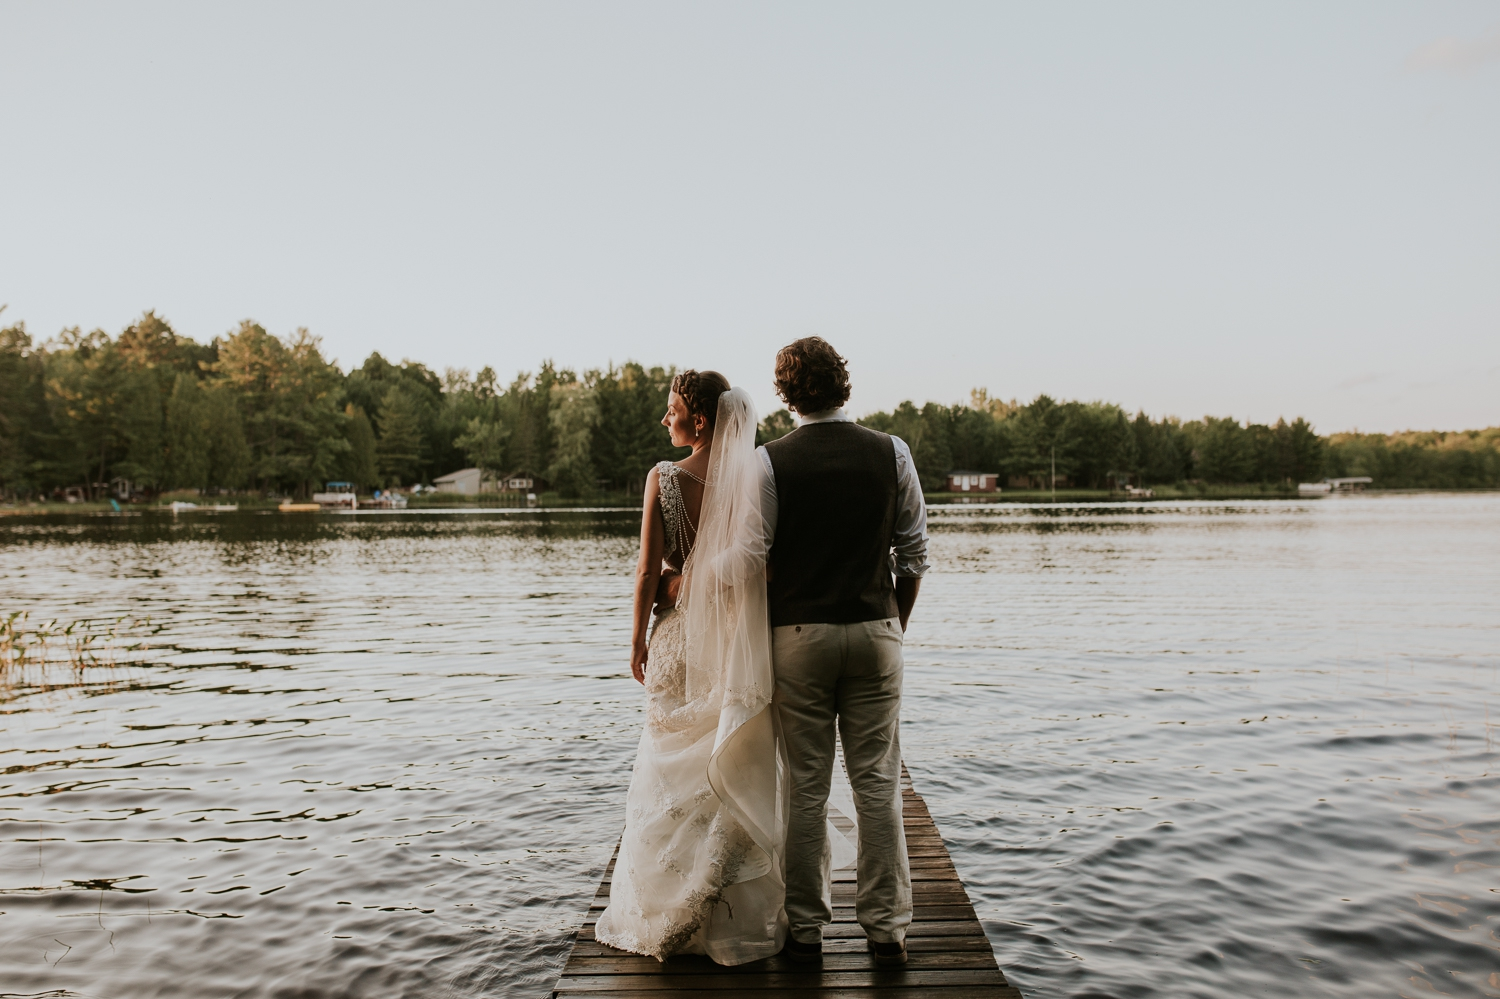 rhinelander-wisconsin-holiday-acres-lakeside-wedding-photographer 126.jpg